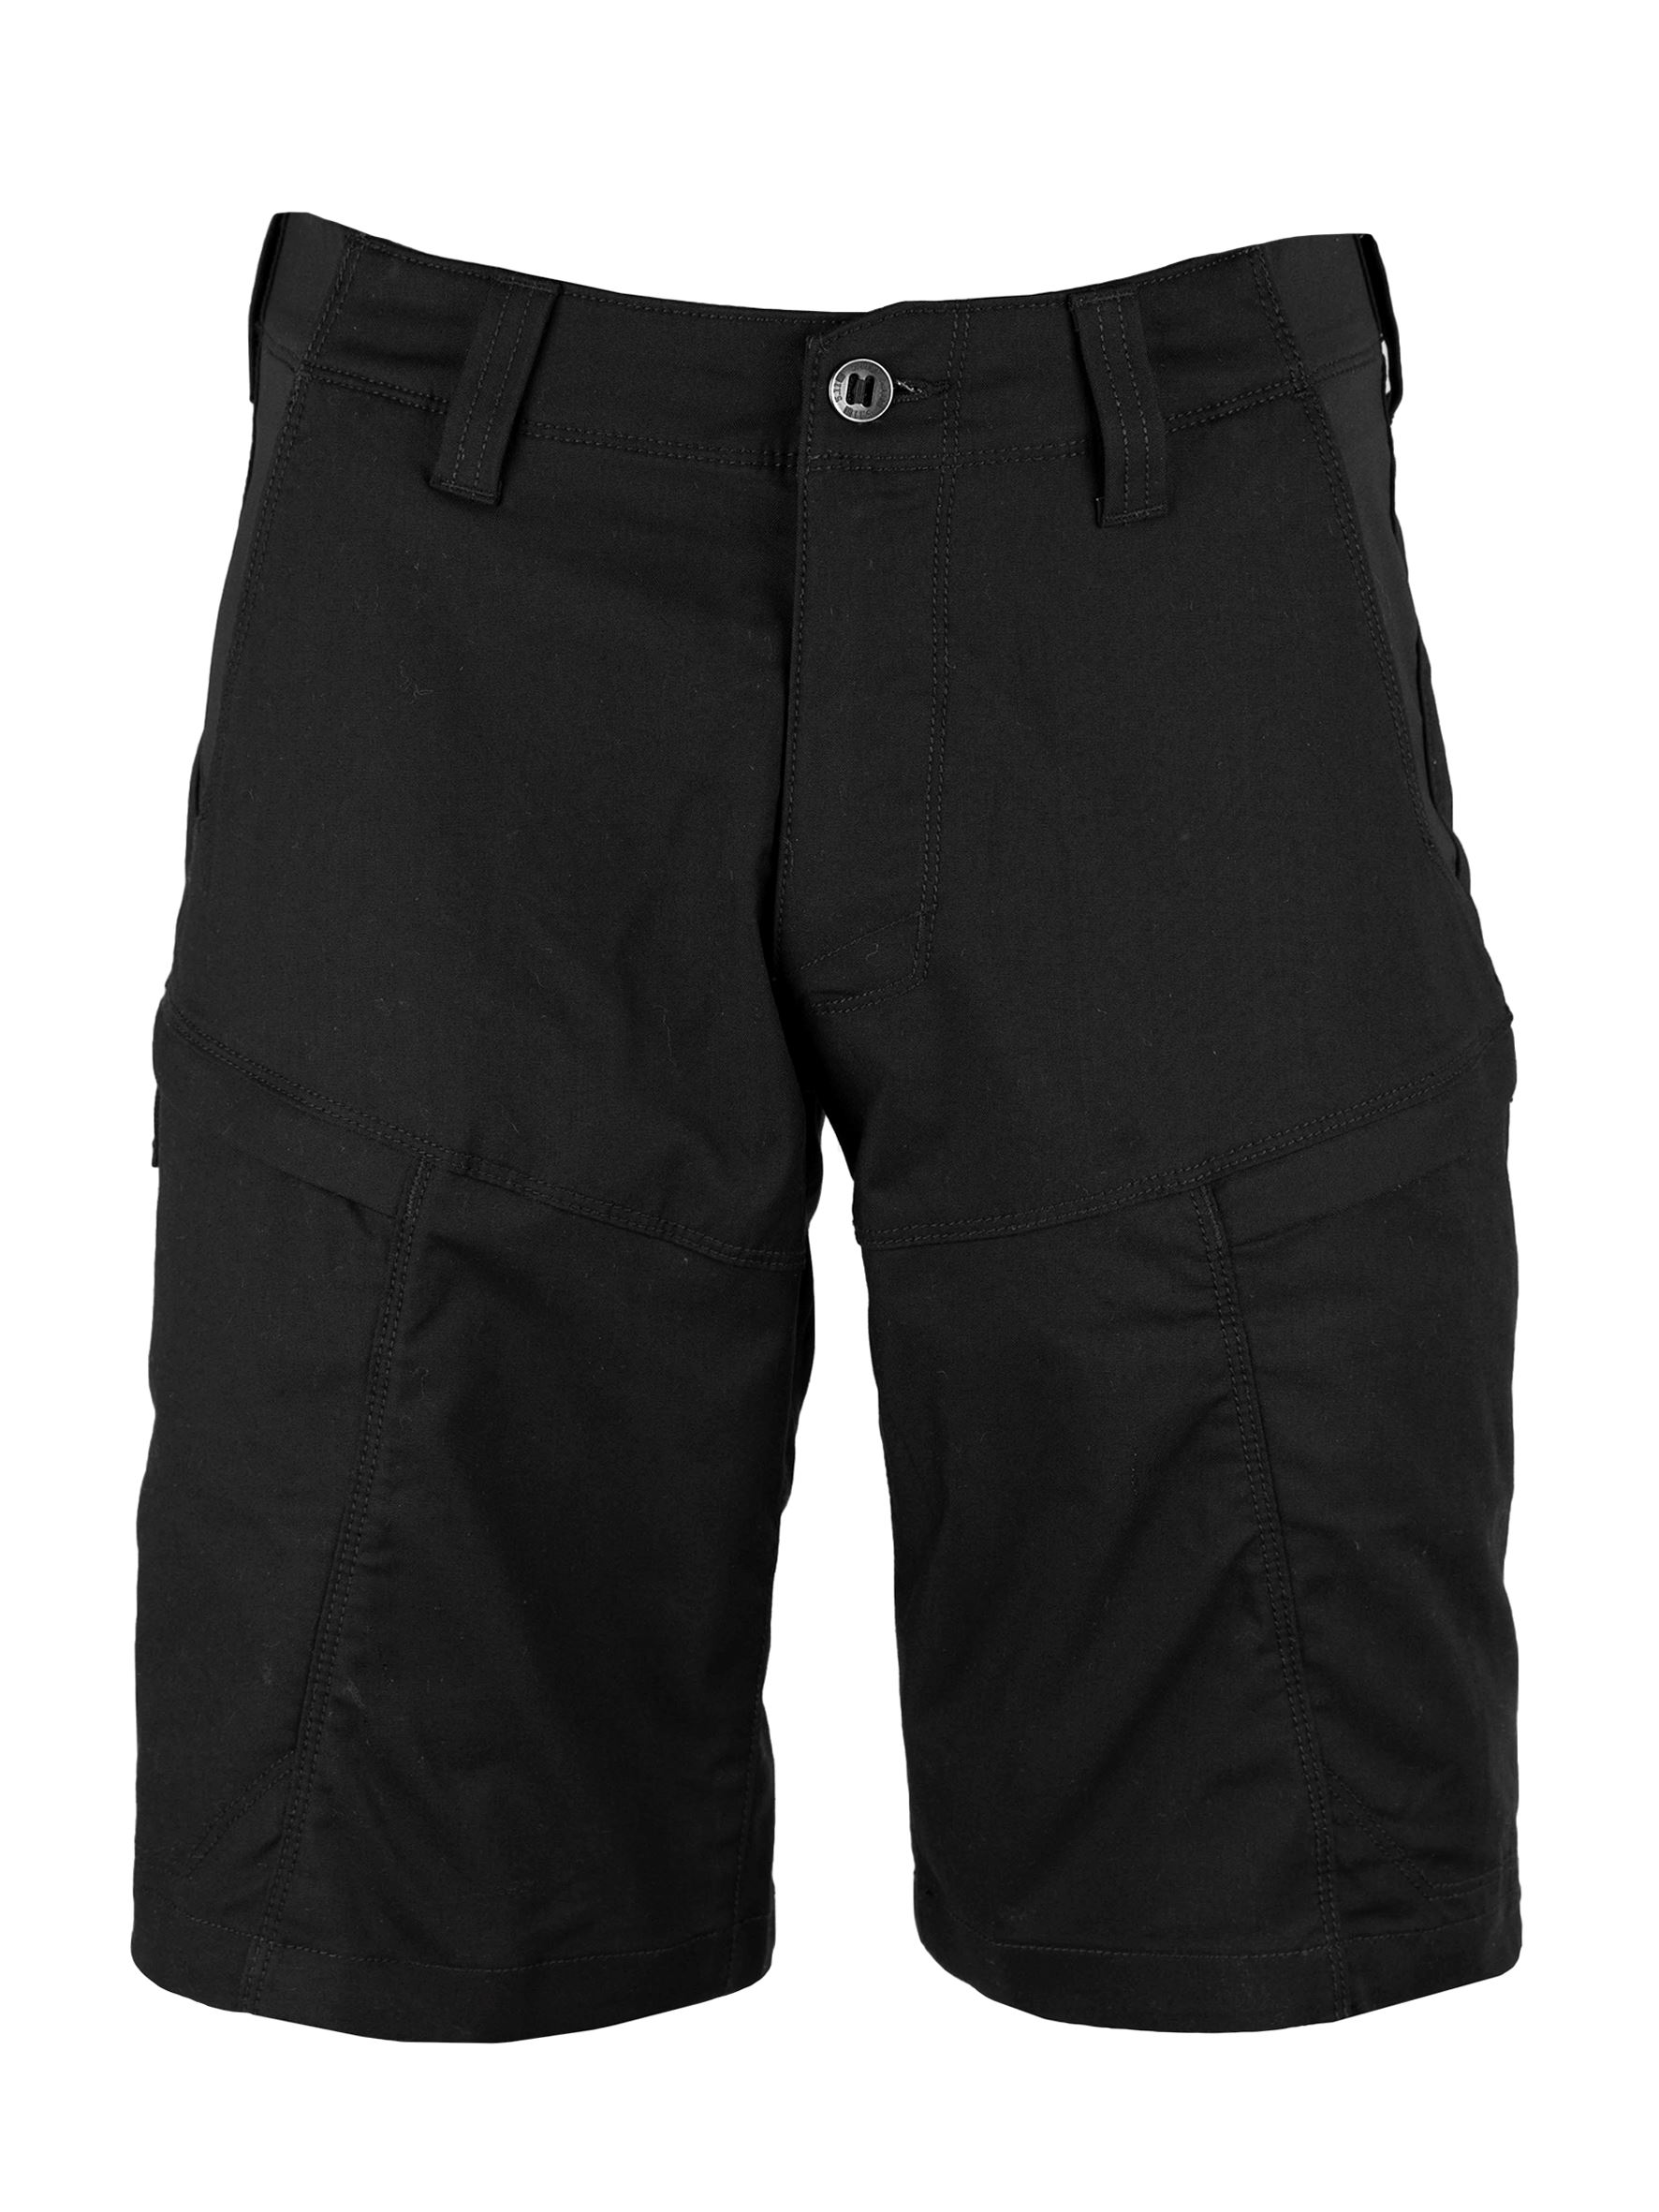 Lette og funktionelle Apex shorts fra 5.11 Tactical